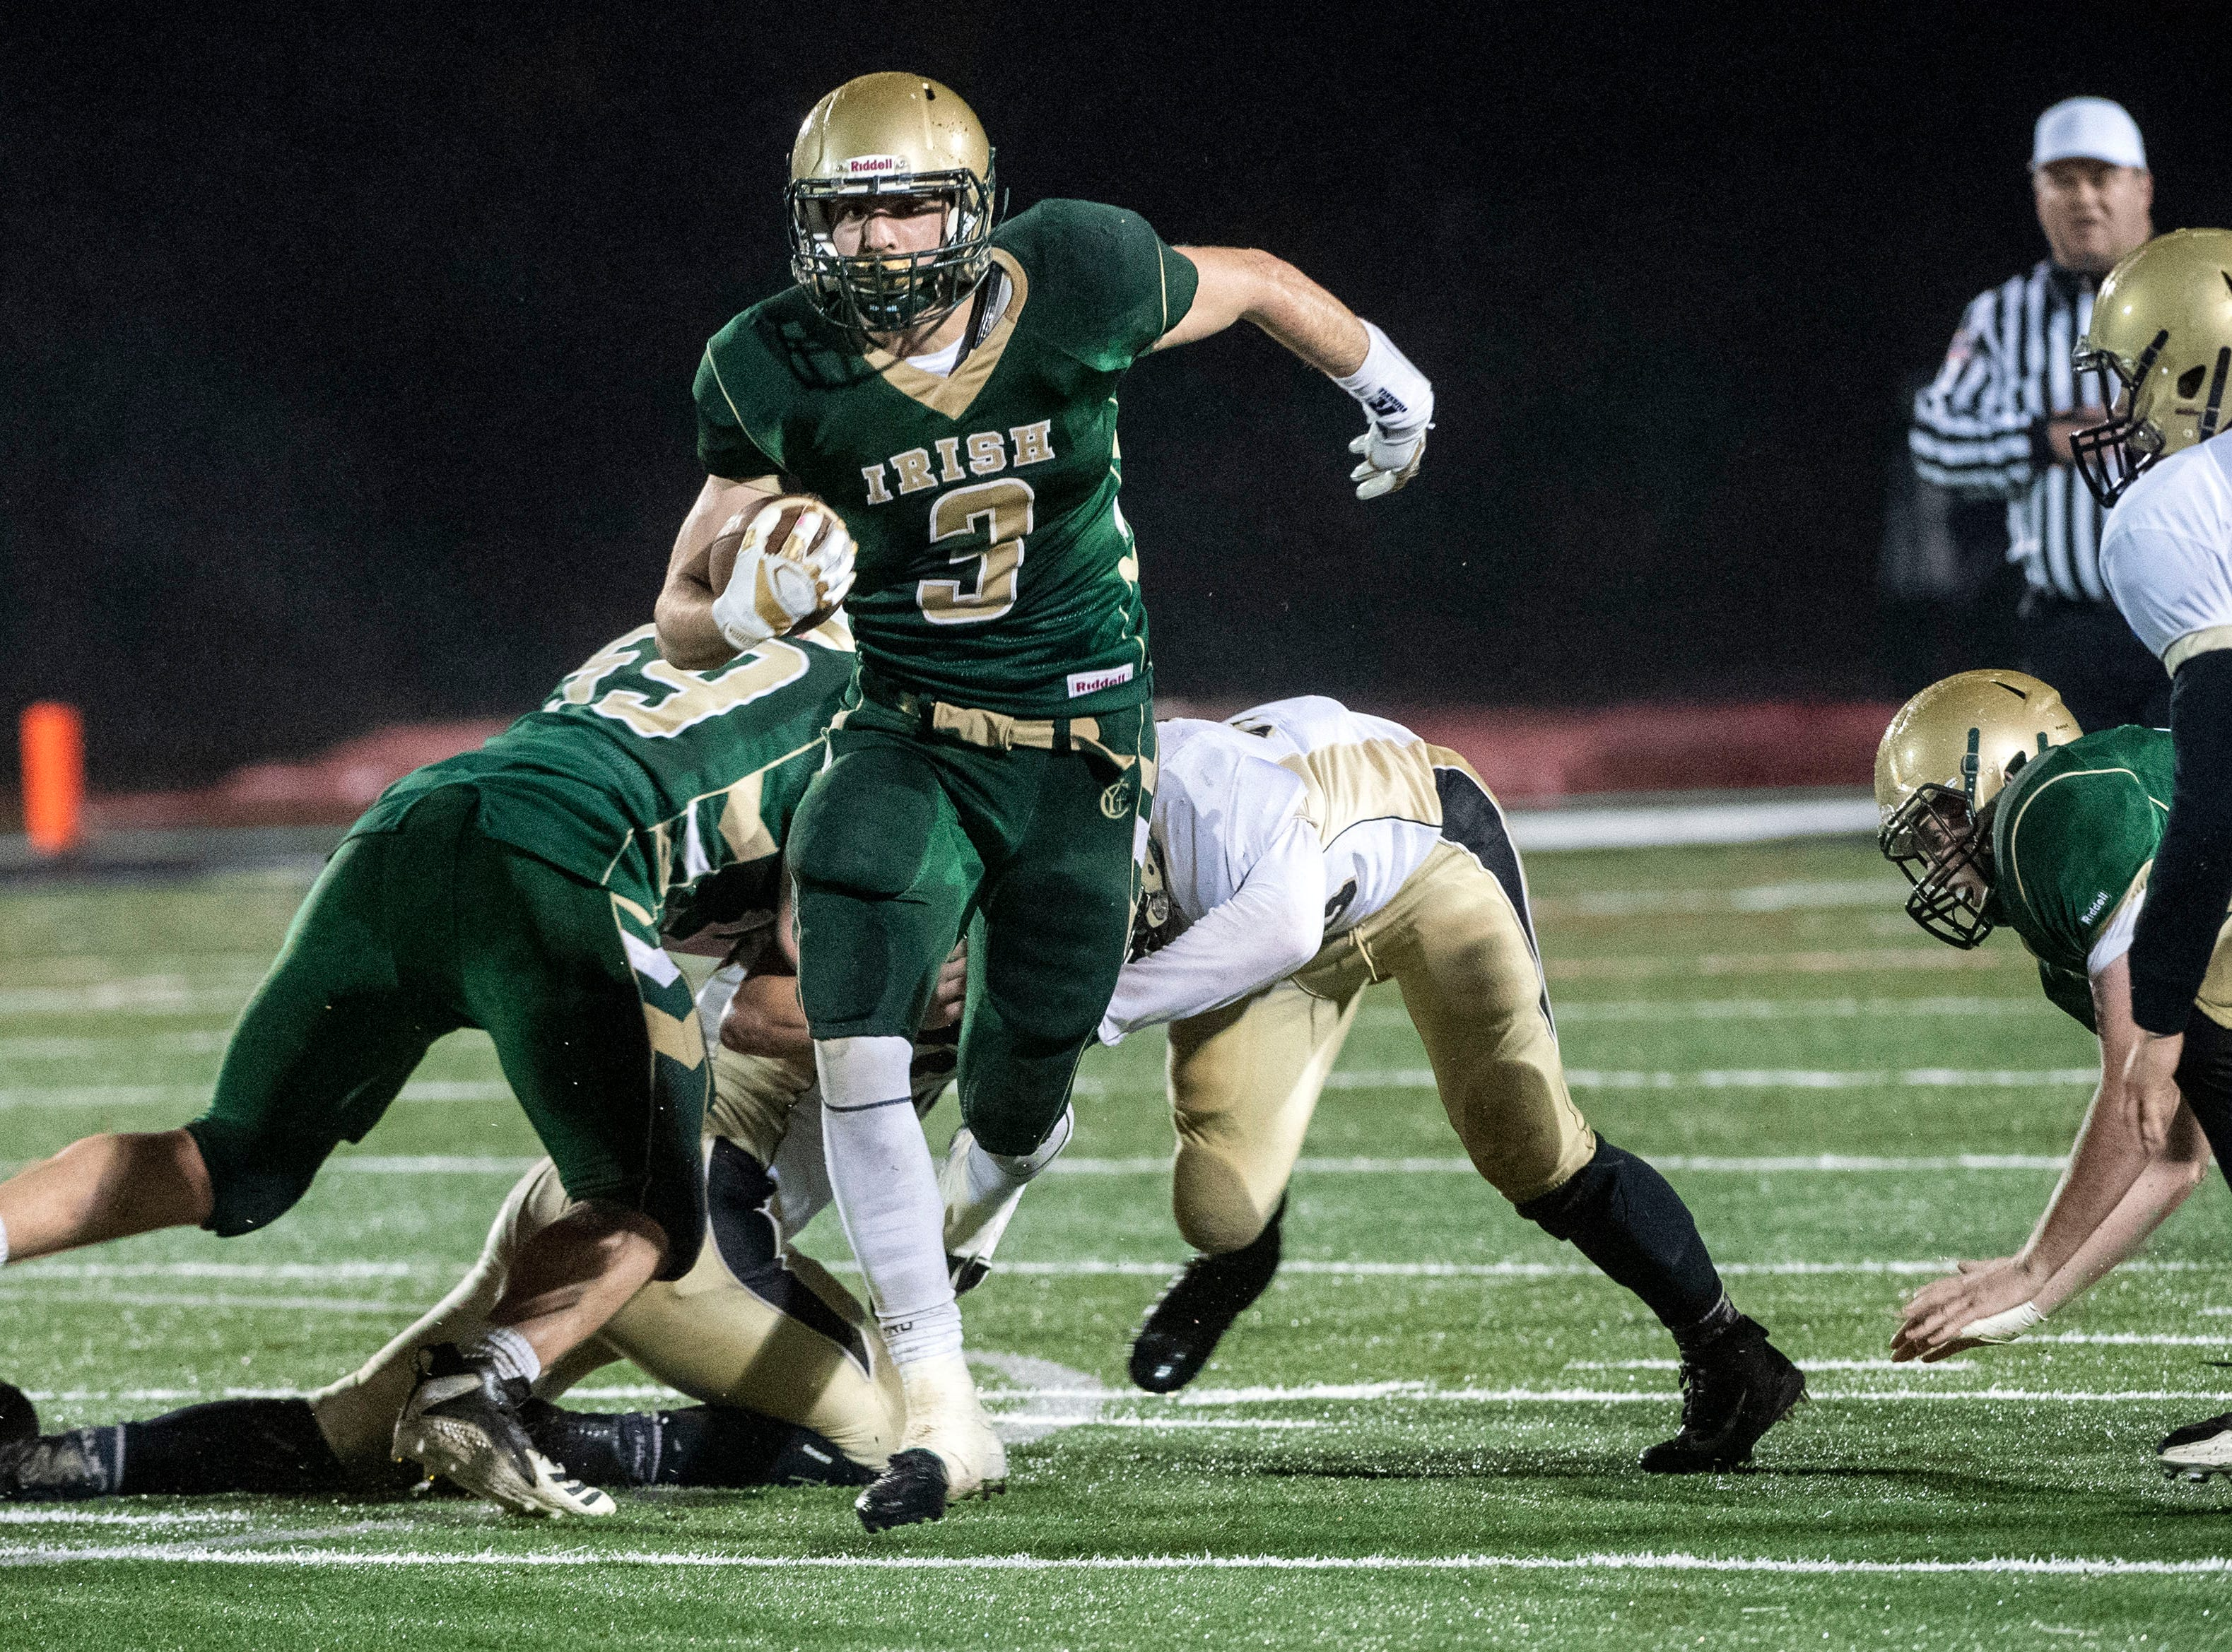 York Catholic's Cole Witman (3) breaks through the offensive line as he runs en route of a touchdown during the District III 2A championship game at South Western High School on Nov. 9, 2018. The York Catholic Fighting Irish beat the Delone Catholic Squires in overtime, 28-21.